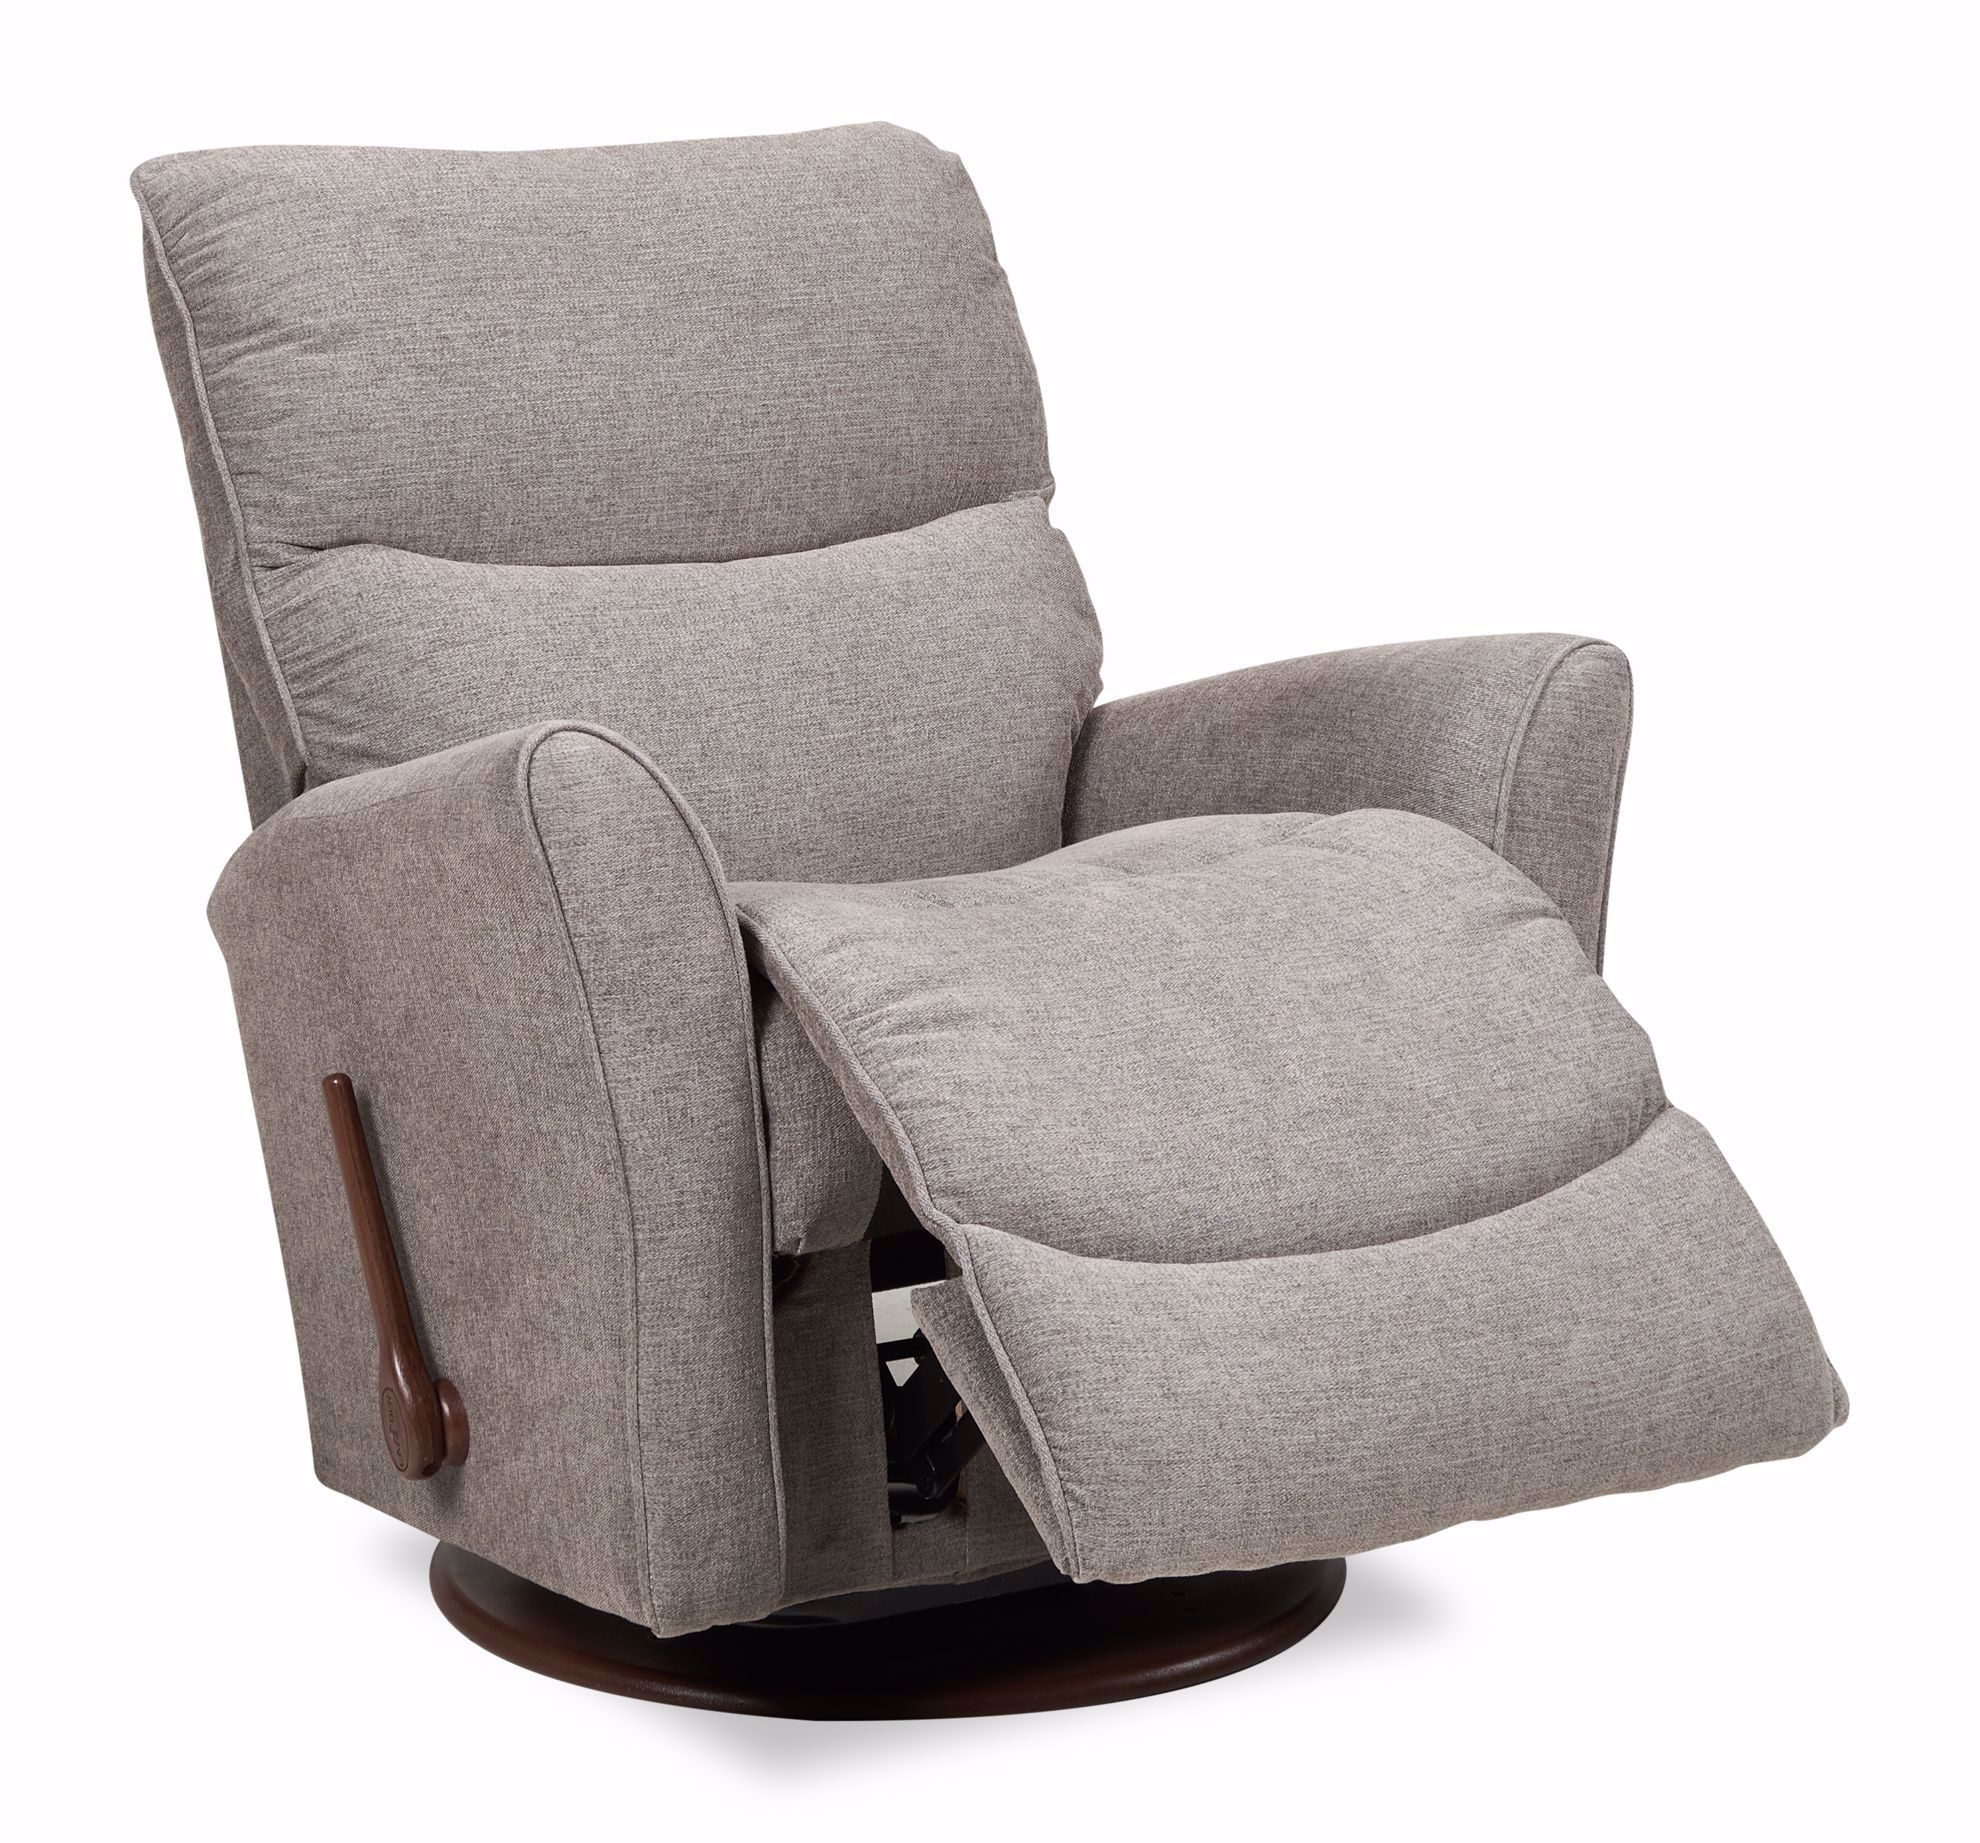 Picture of Rowan Sable Swivel Glider Recliner